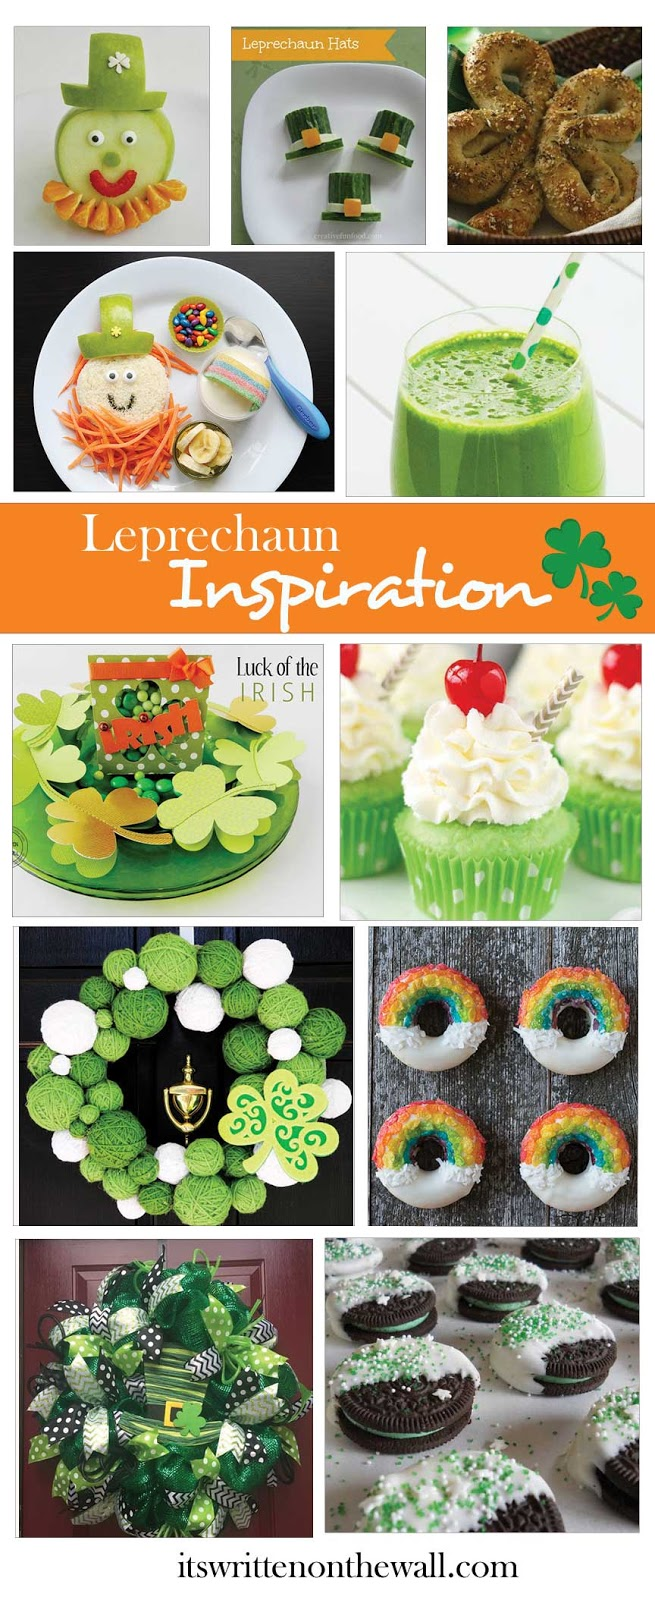 Apple Leprechaun